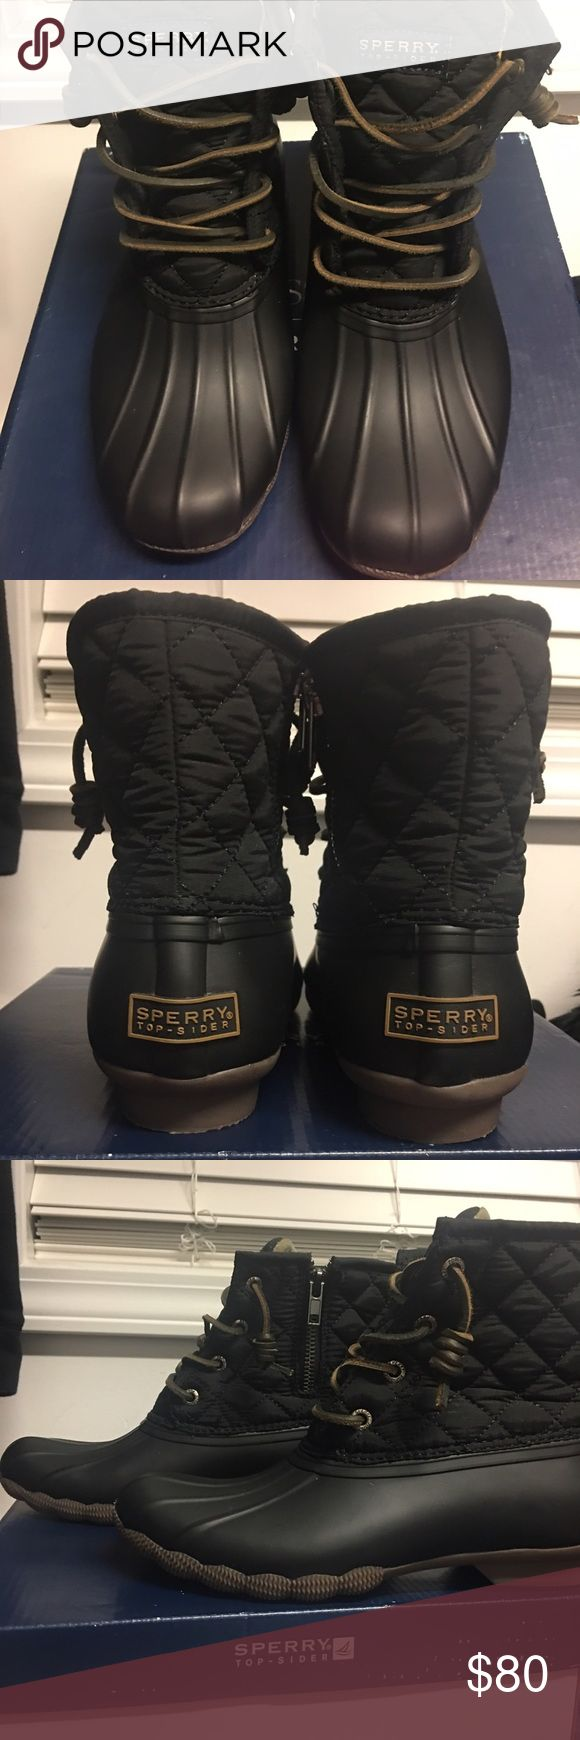 Sperry Duck Boots Women's black 5.5 to small for me, new with box Sperry Shoes Winter & Rain Boots